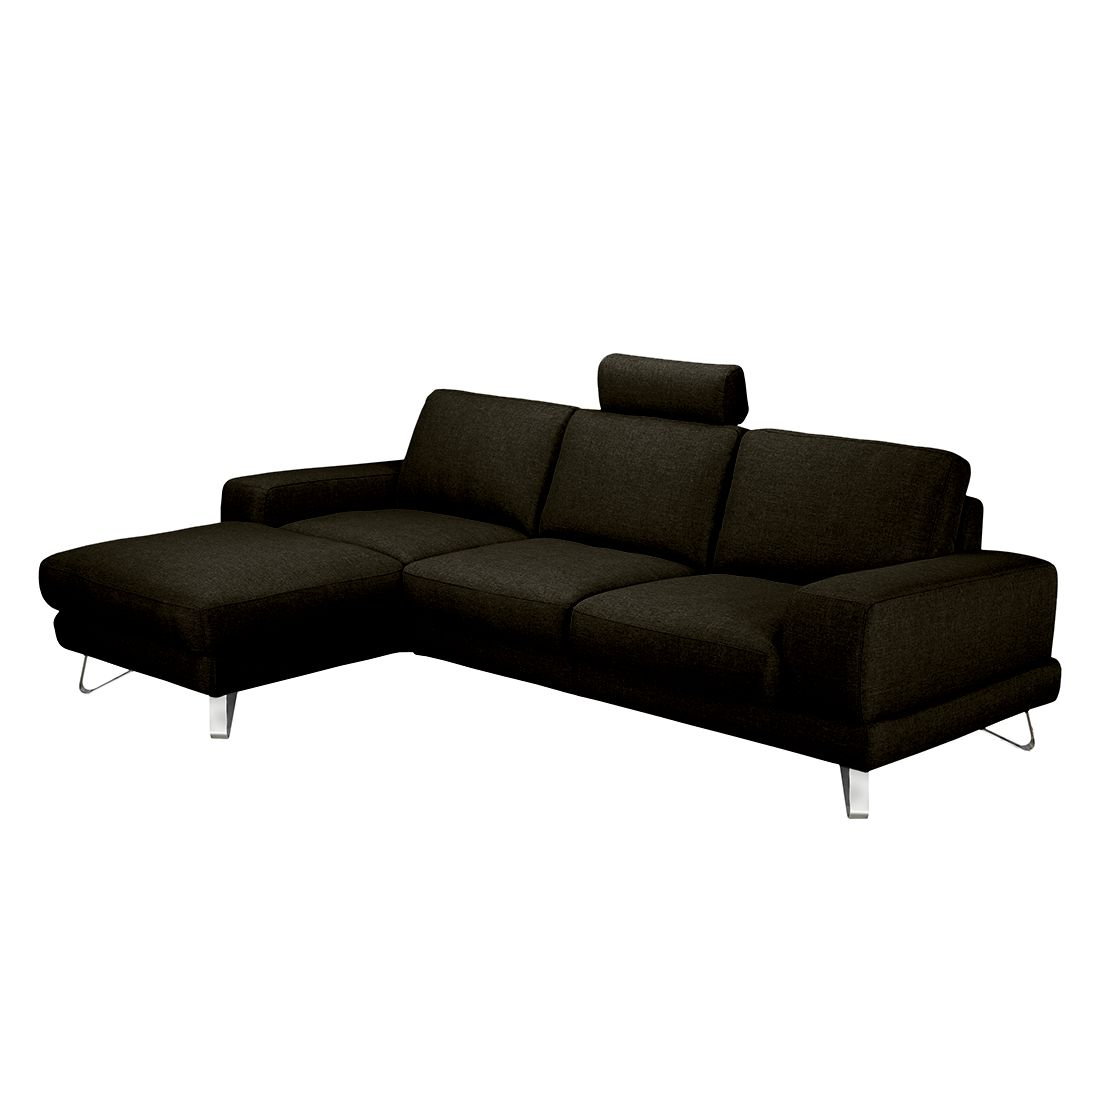 ecksofa bradley webstoff braun schwarz longchair. Black Bedroom Furniture Sets. Home Design Ideas